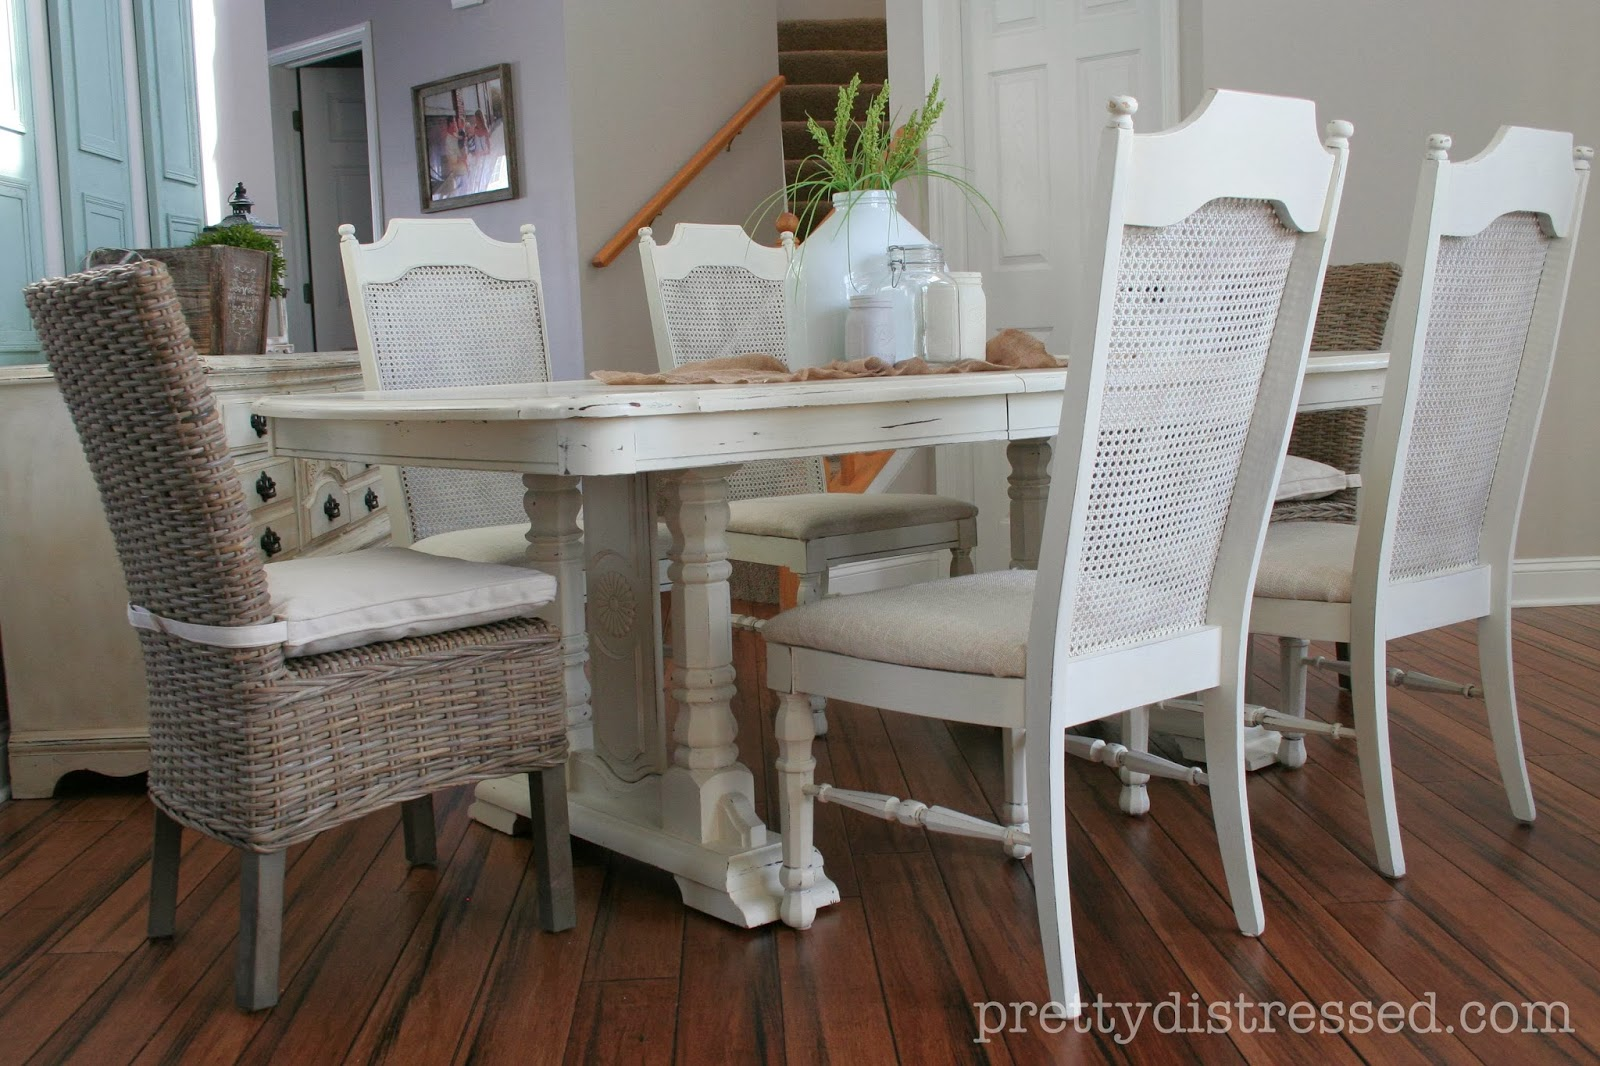 Chalk Paint Dining Room Set: Pretty Distressed: Eleanor's Table